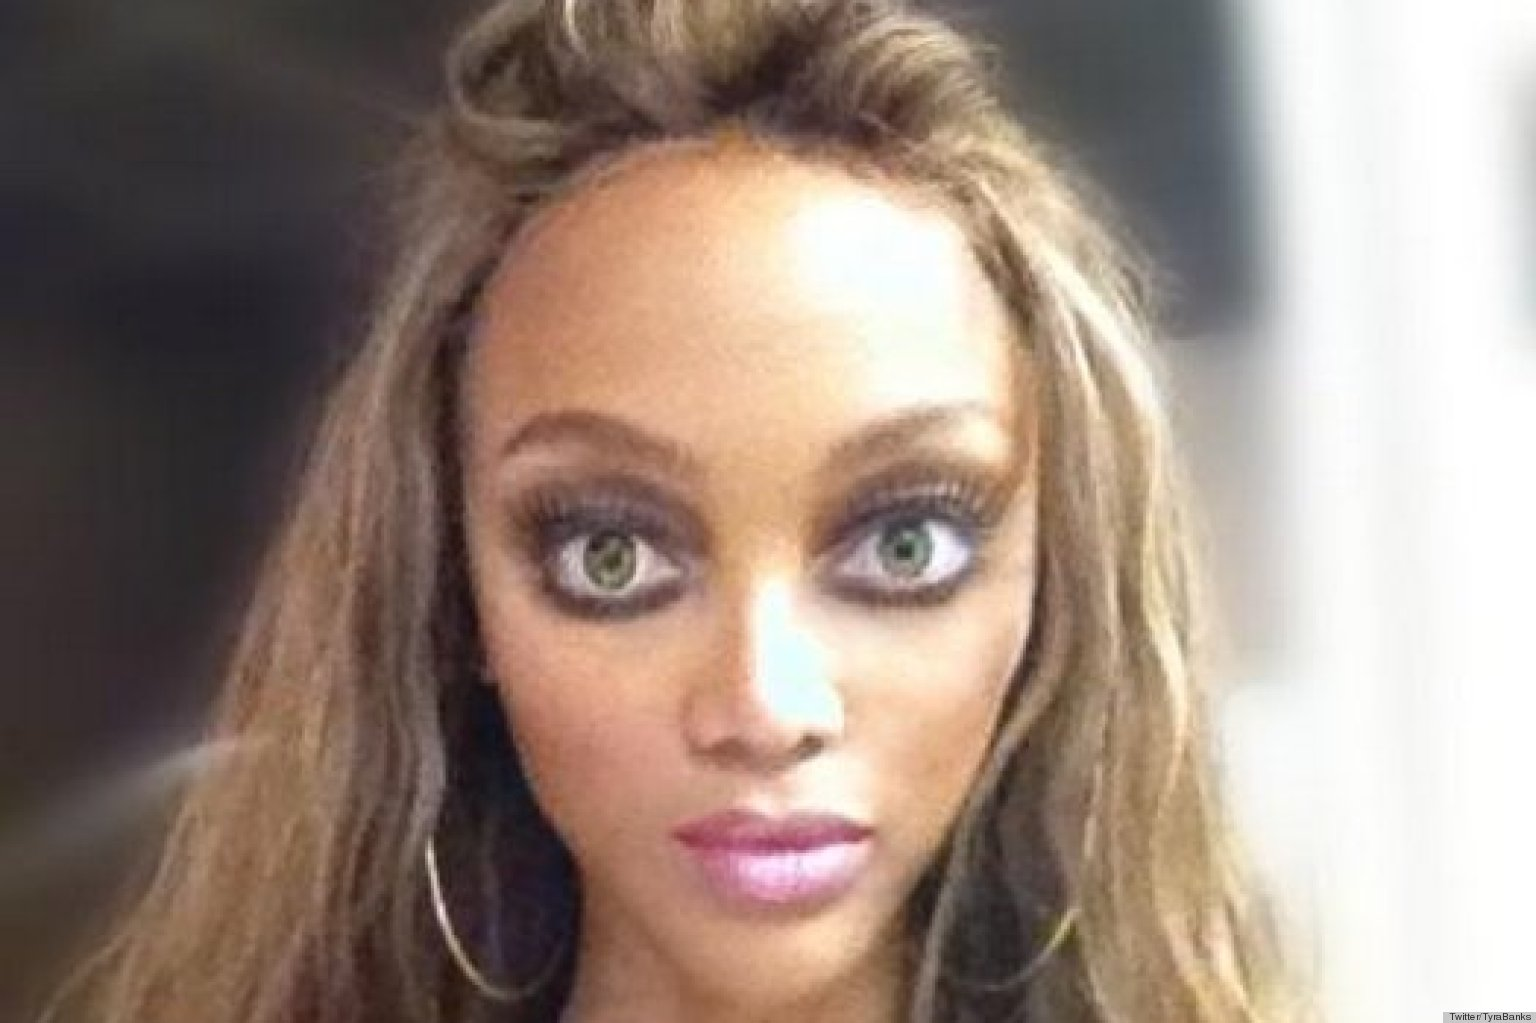 Buy Banks tyra smizing picture trends